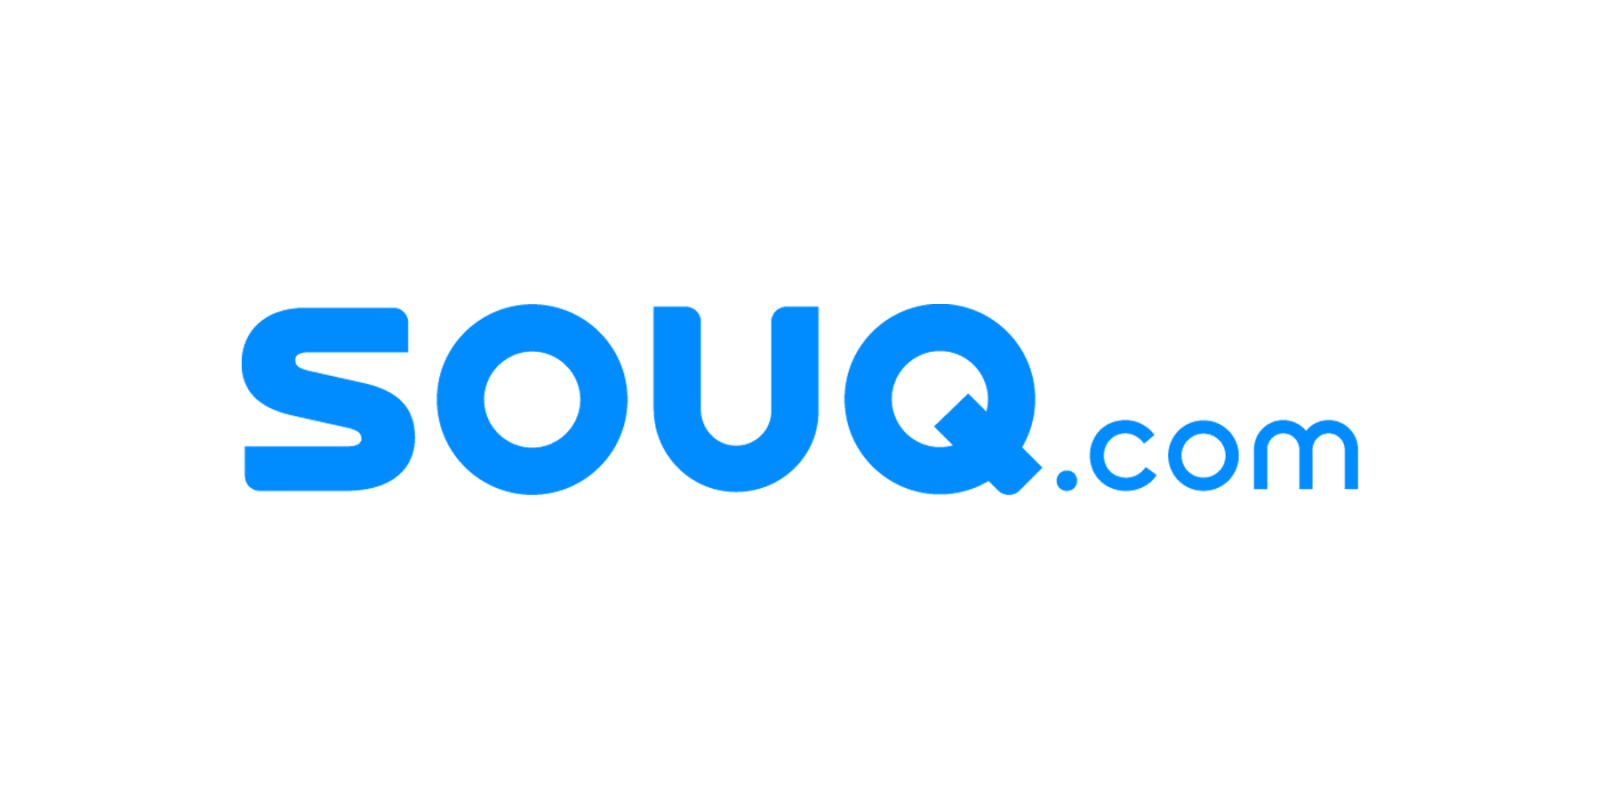 Souq com Archives - Absolute Geeks - Technology, Movies, Smartphones